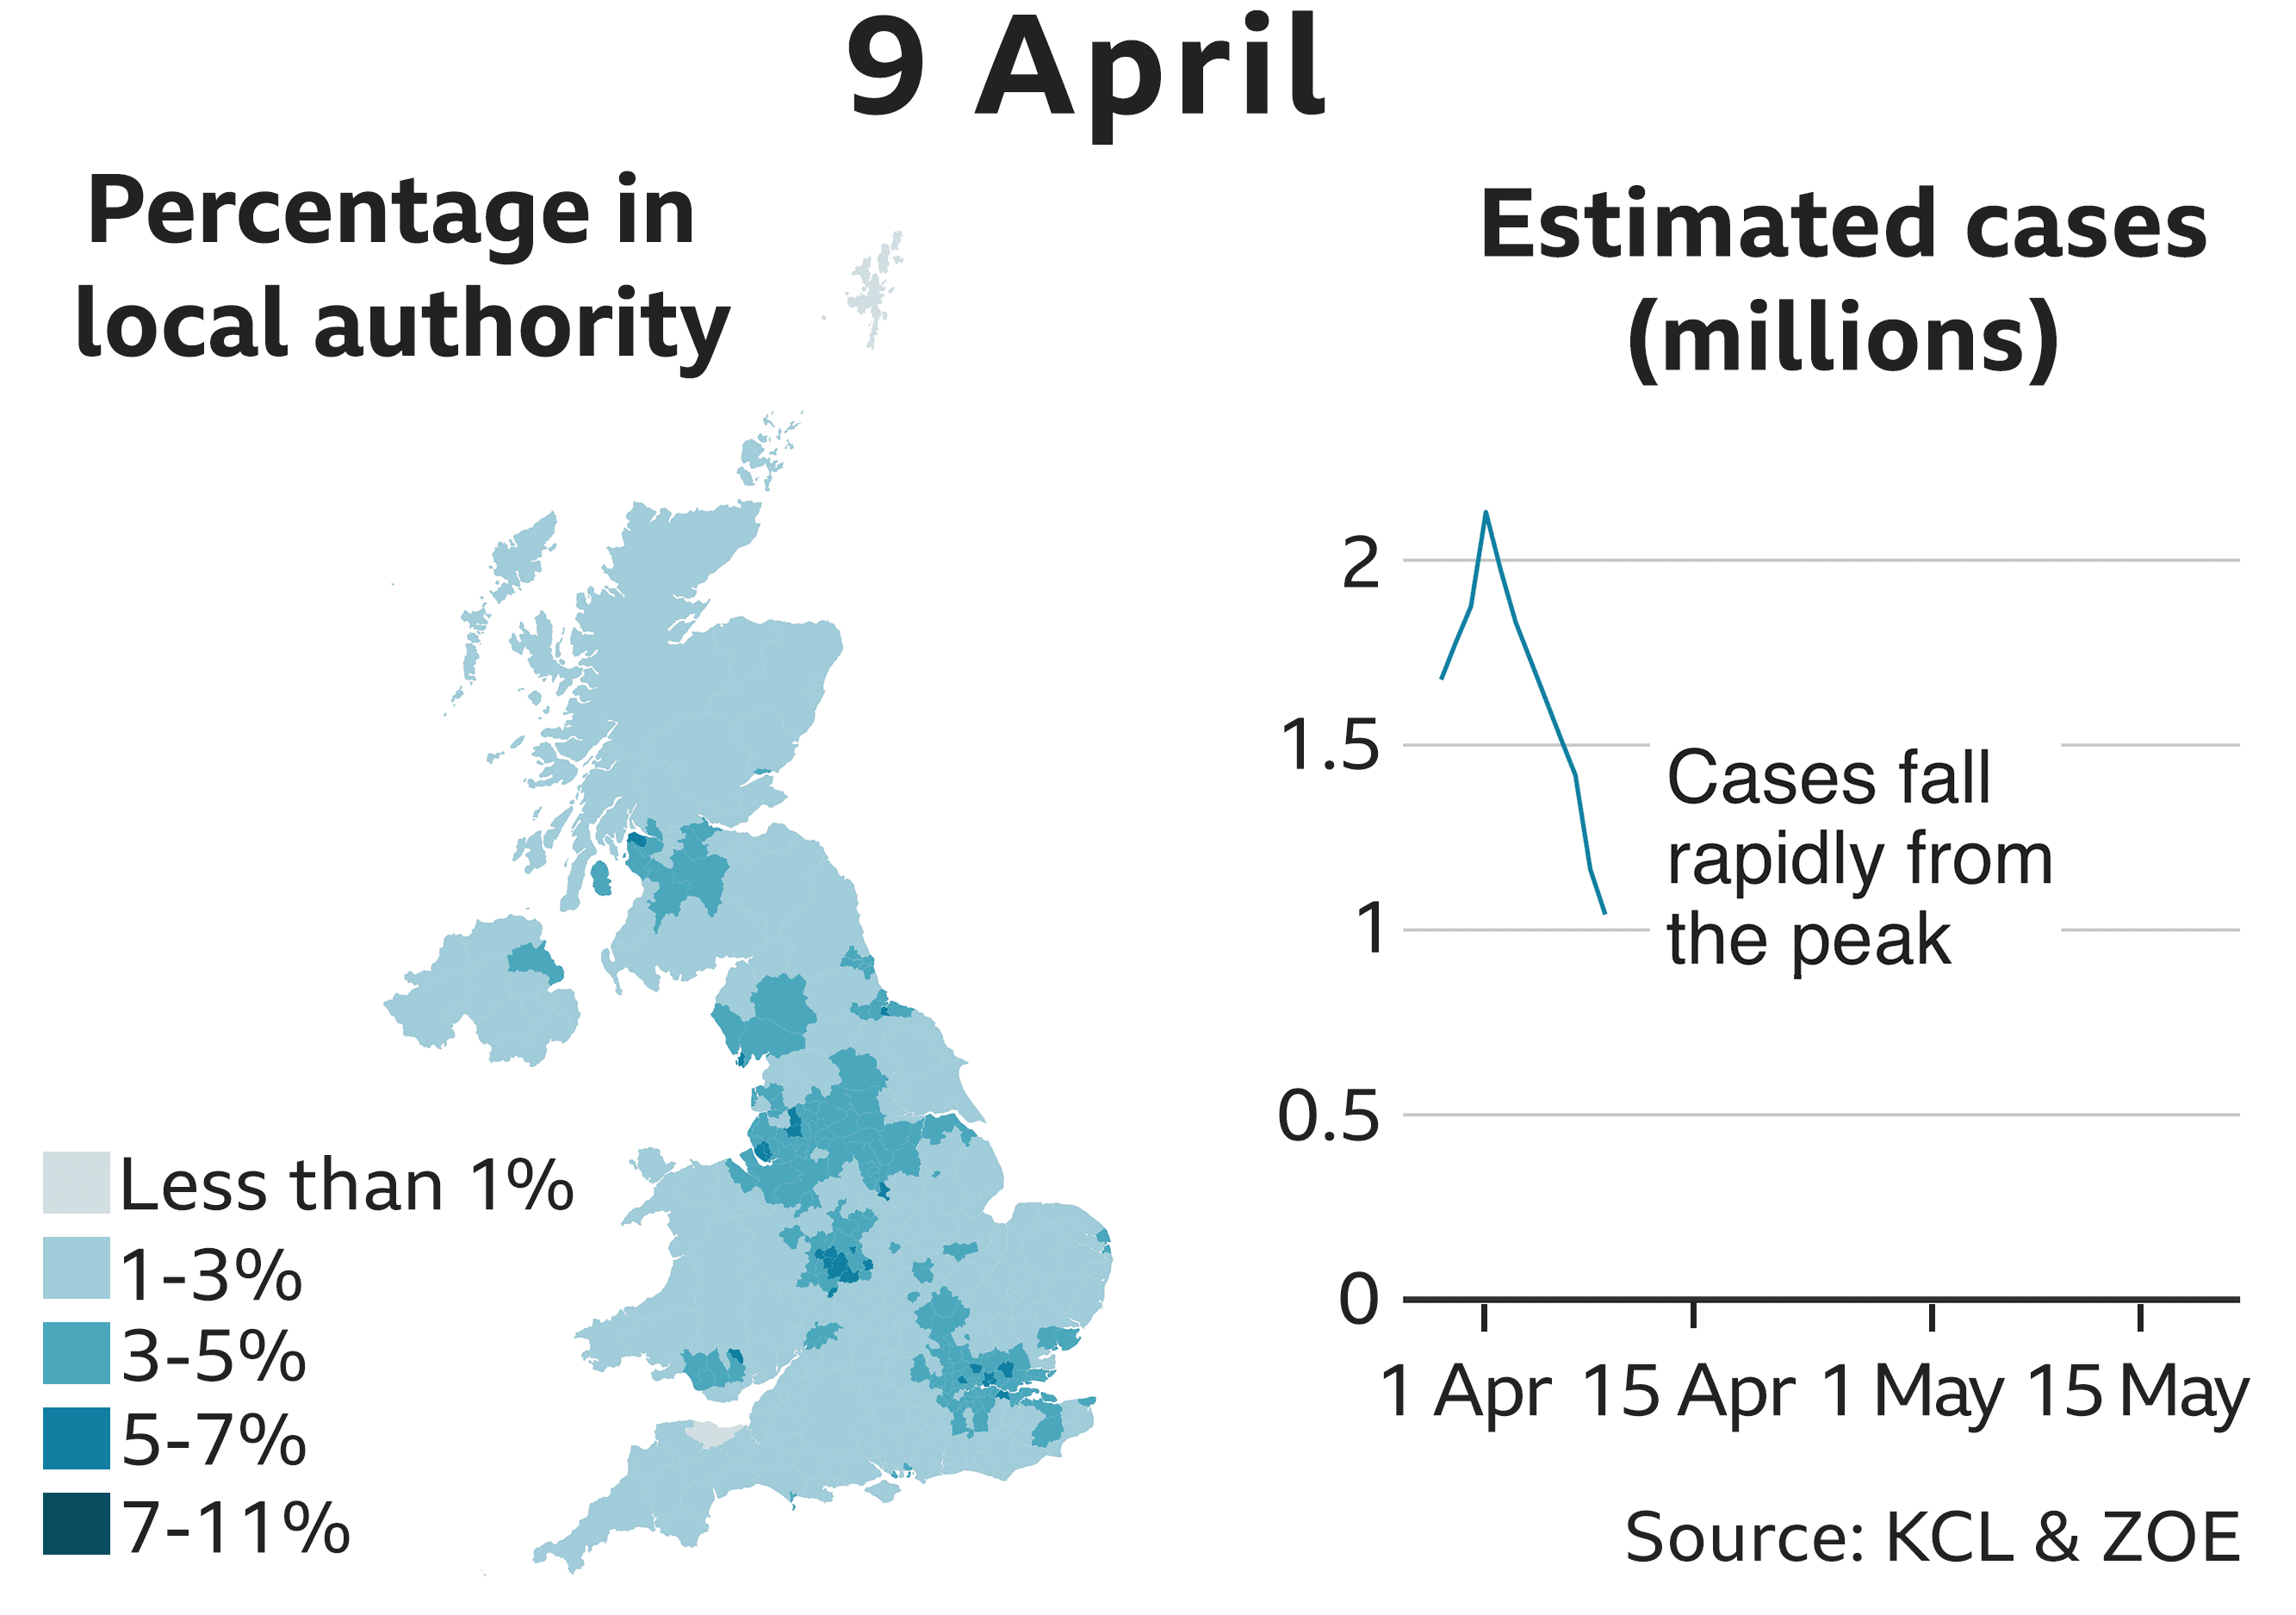 9 Apr 1041801 estimated cases. Chart shows estimated cases continuing to decline steeply